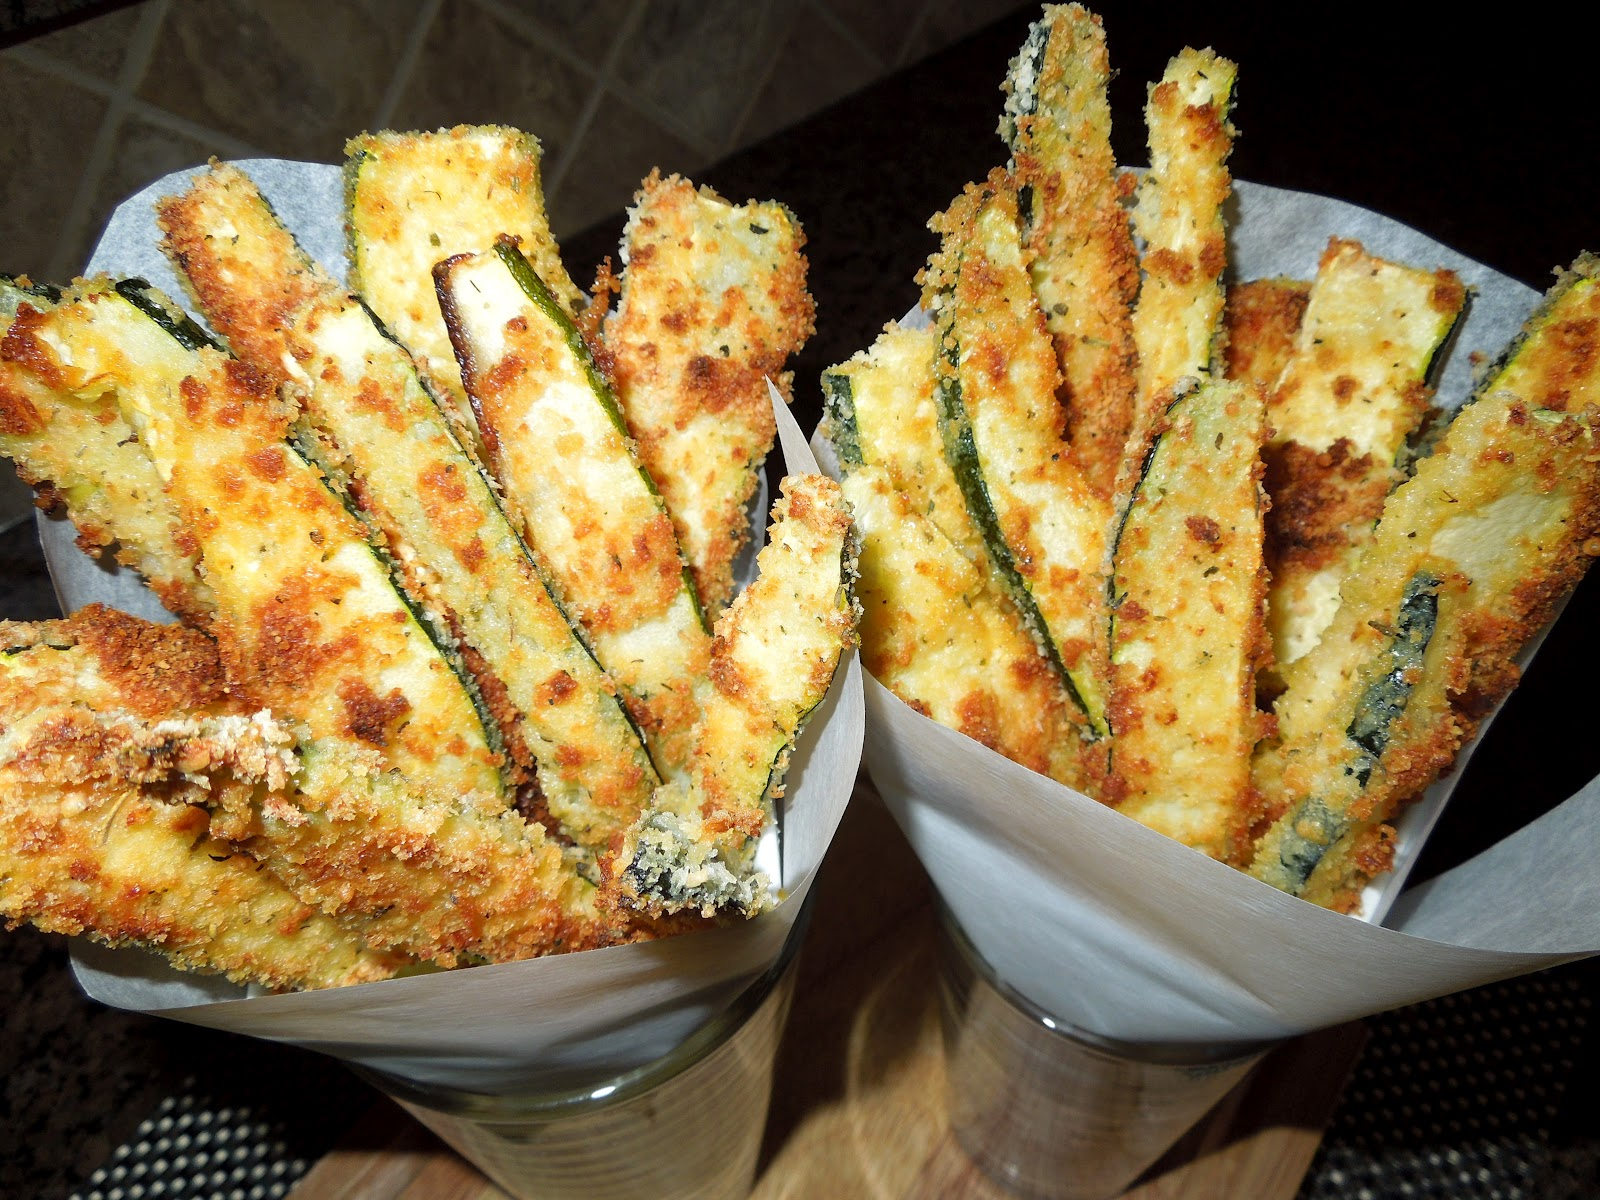 Recipes: Panko-Parmesan Crusted Zucchini Fries